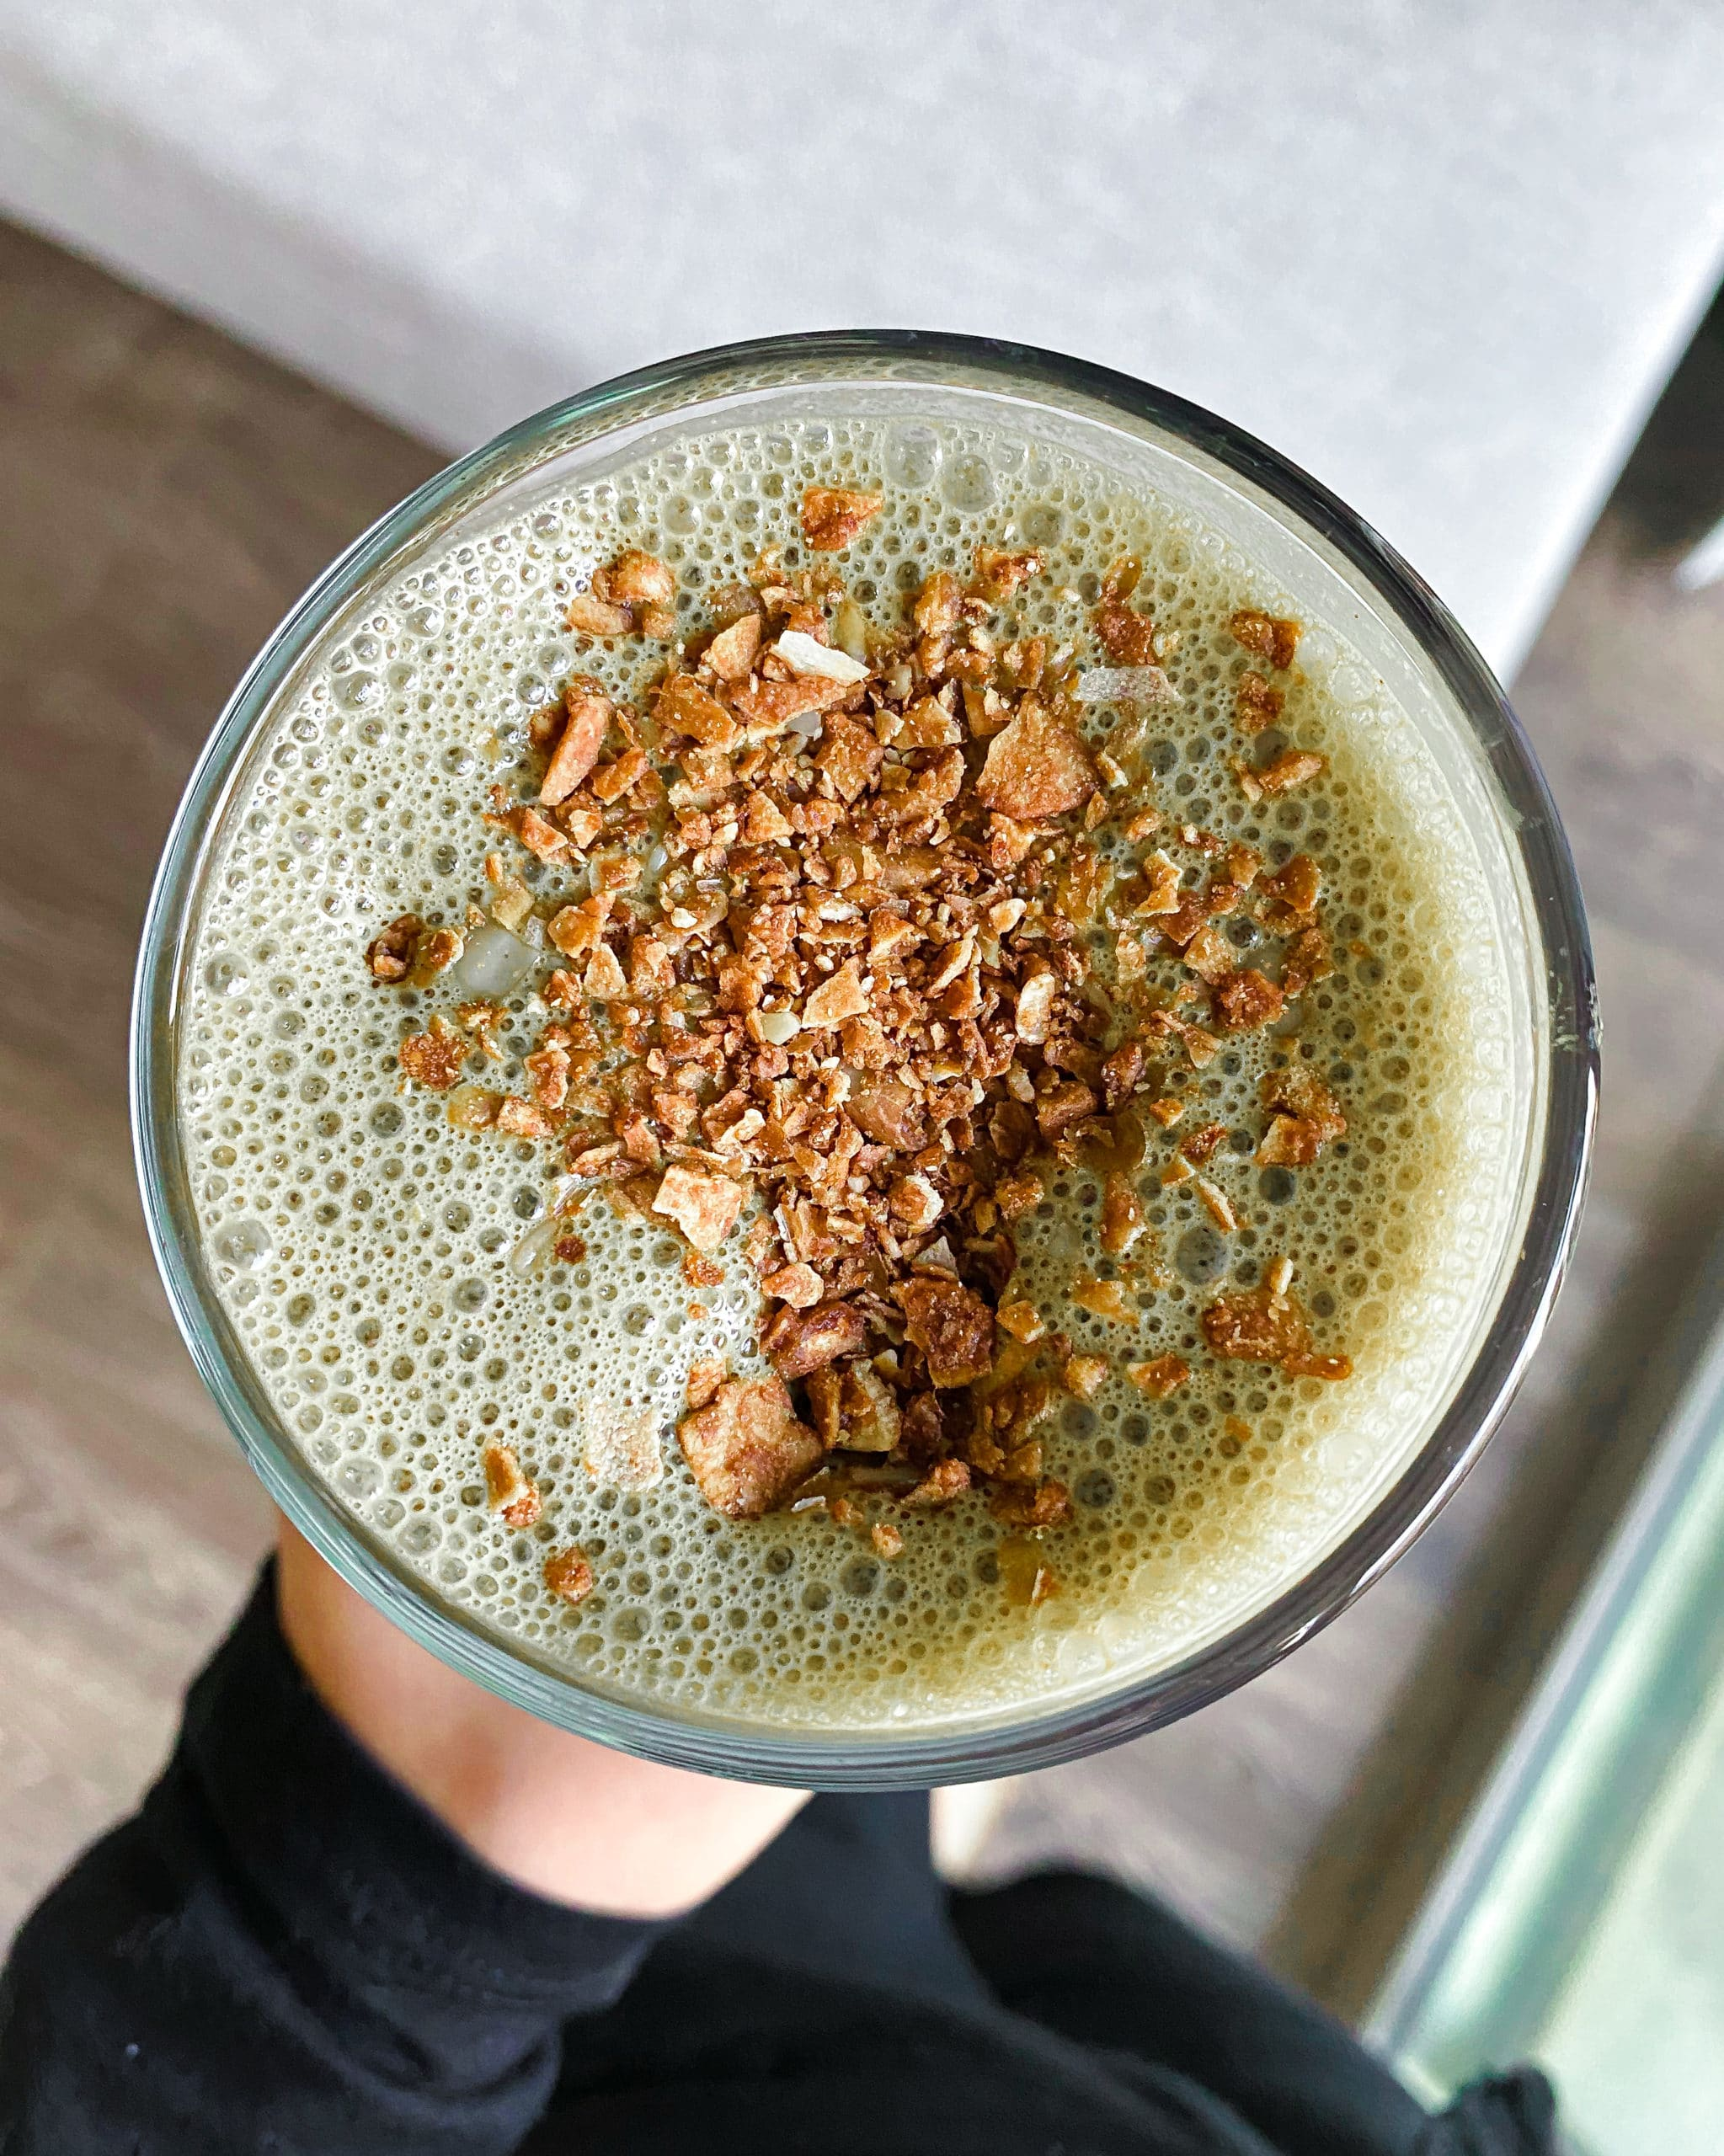 Nutty buddy green smoothie in a glass with chocolate granola on top.